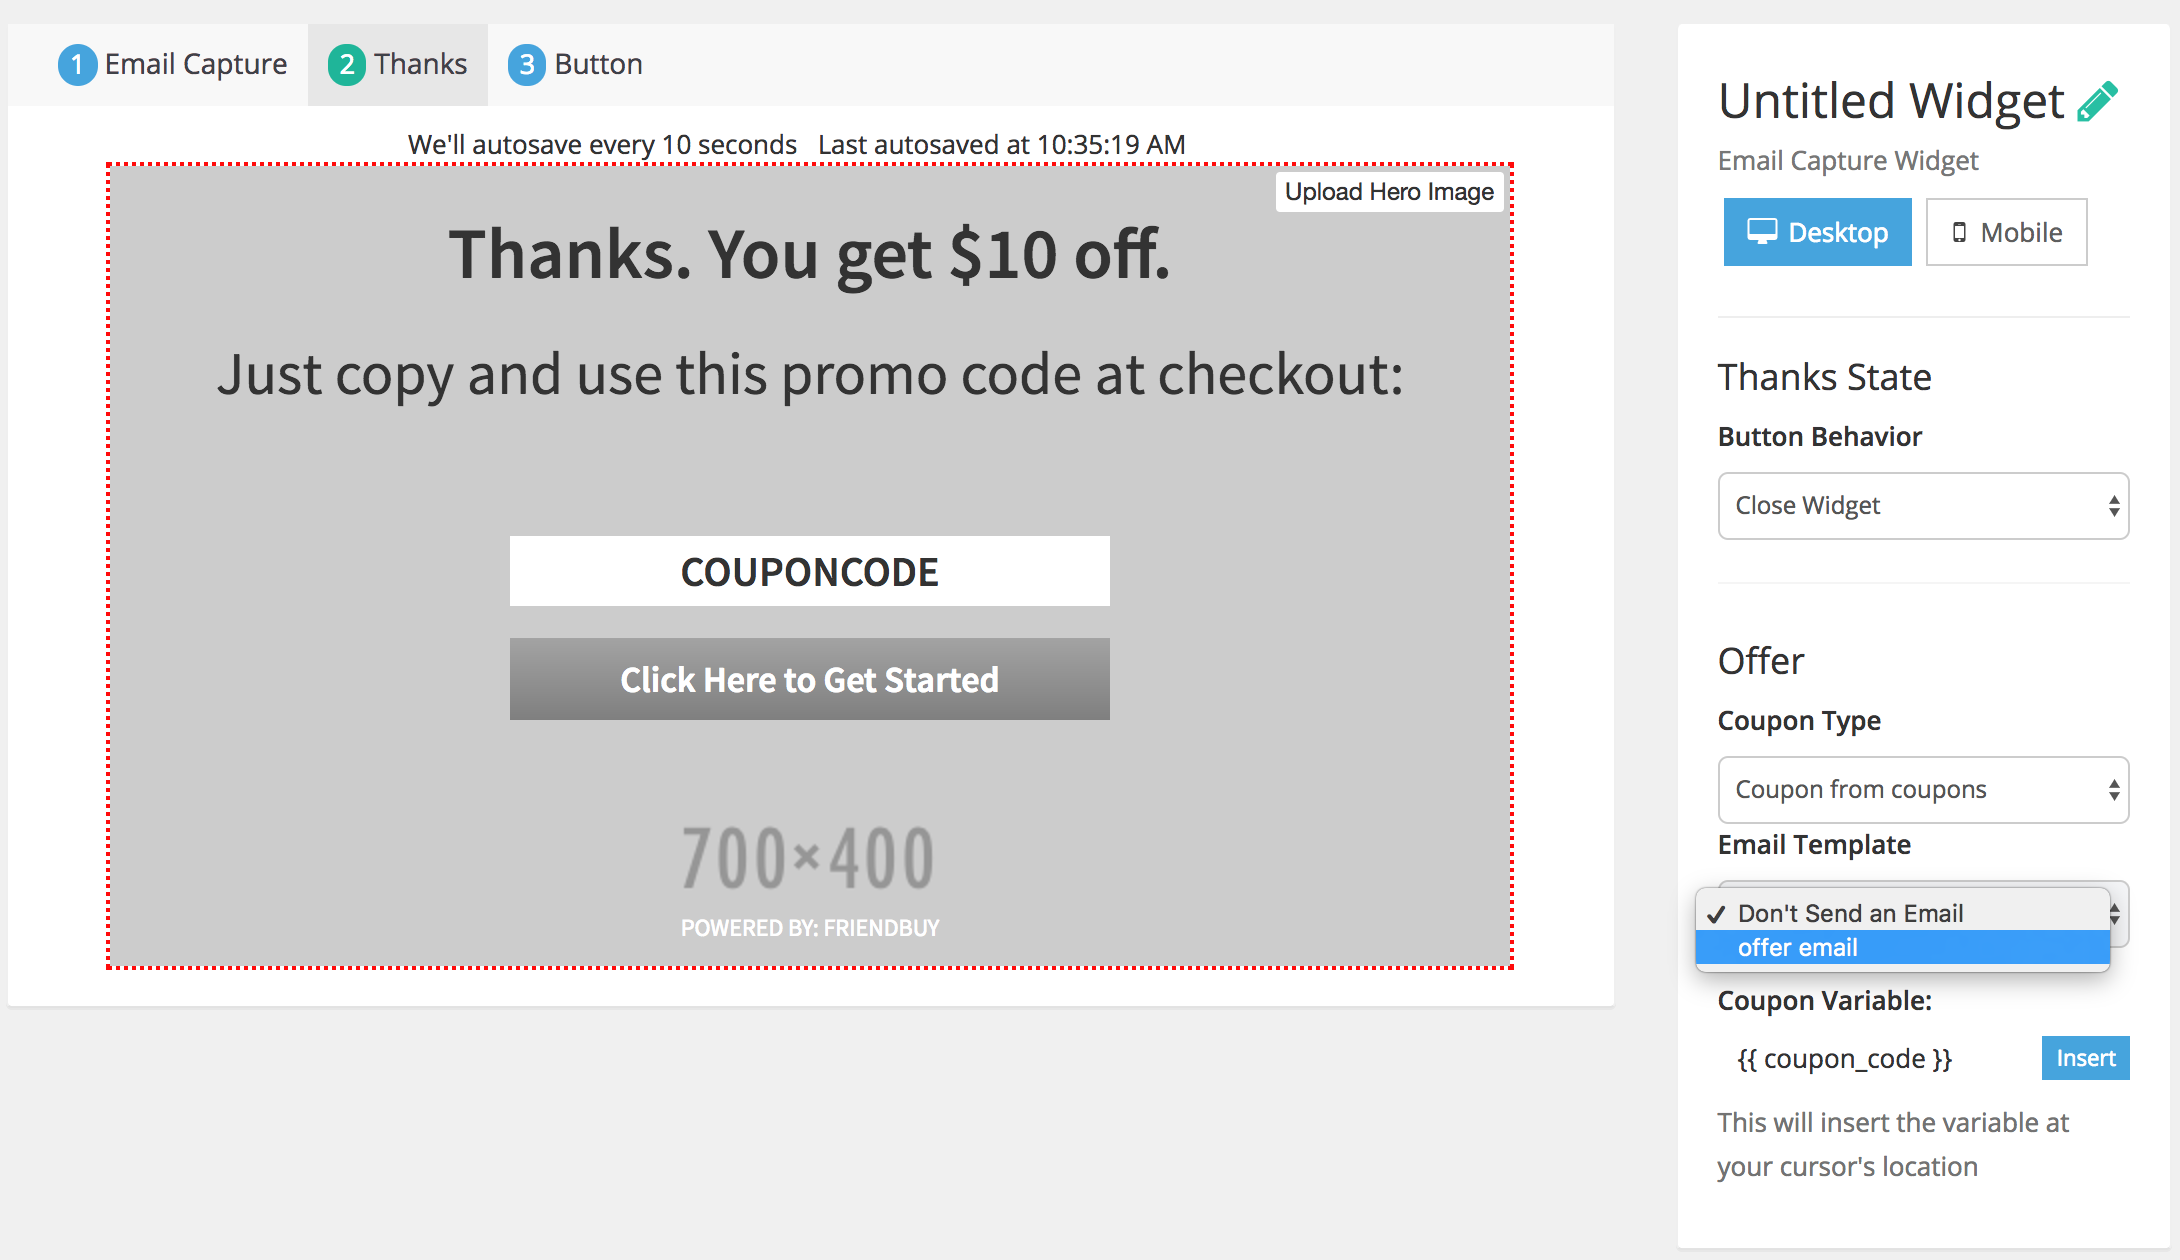 Distribute Friend Coupons + Offer Emails using an Email Capture ...